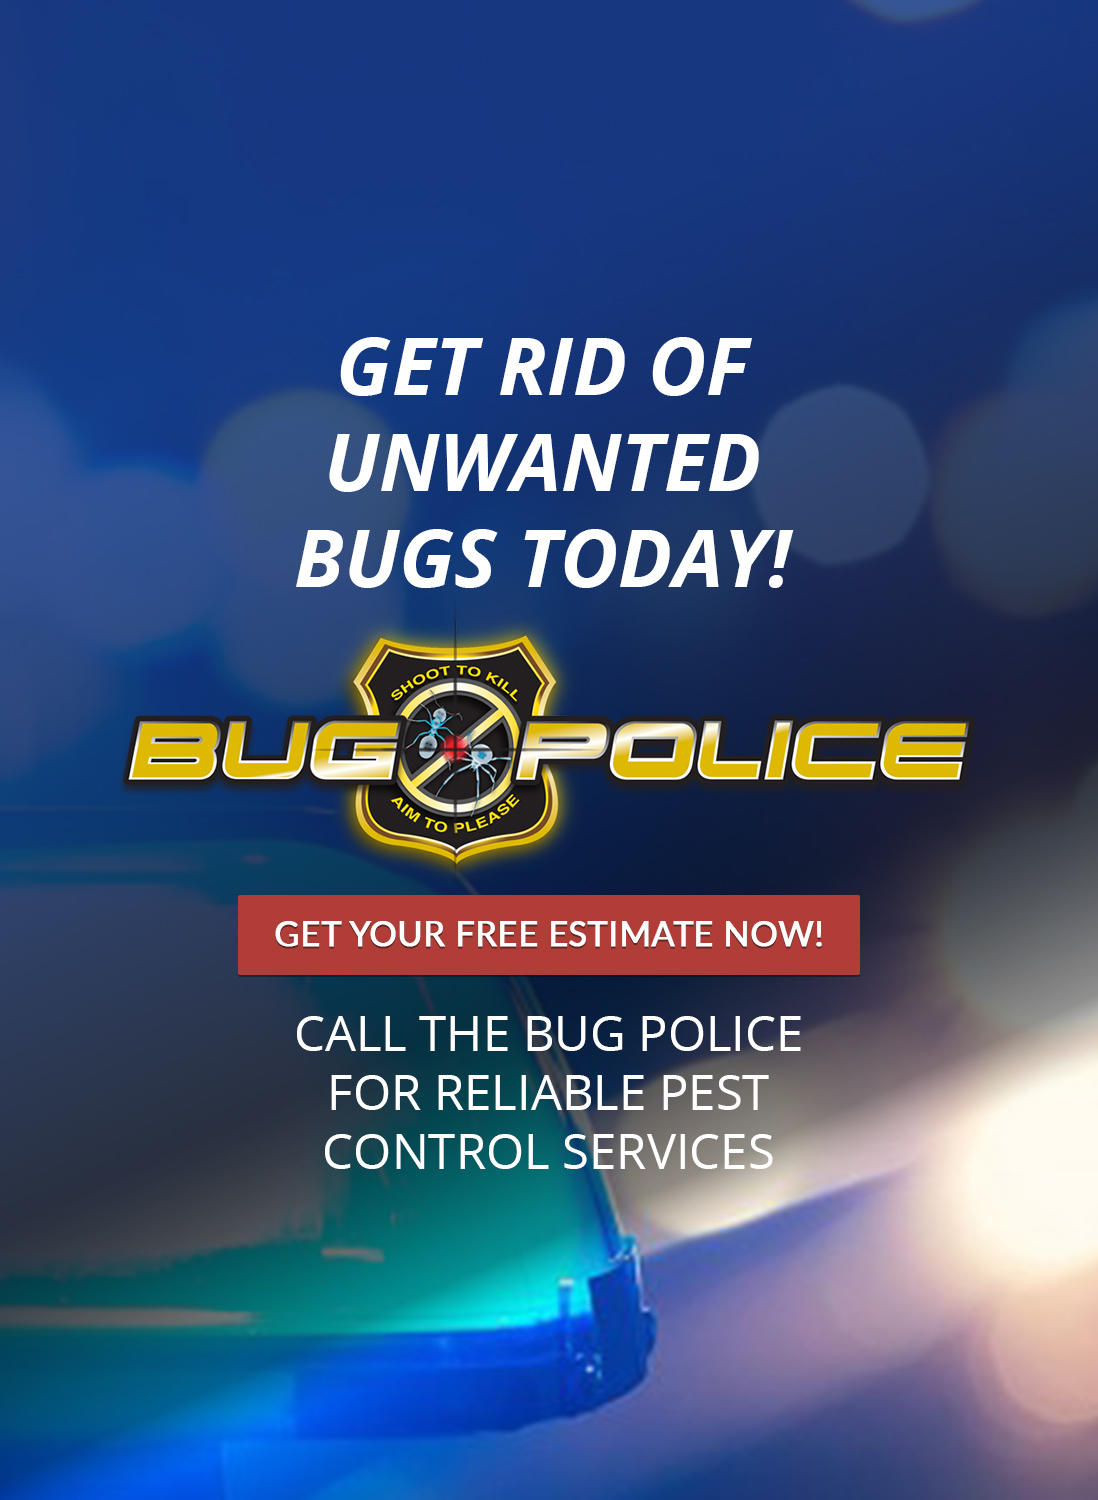 Free yourself from unwanted pests today and call The Bug Police!